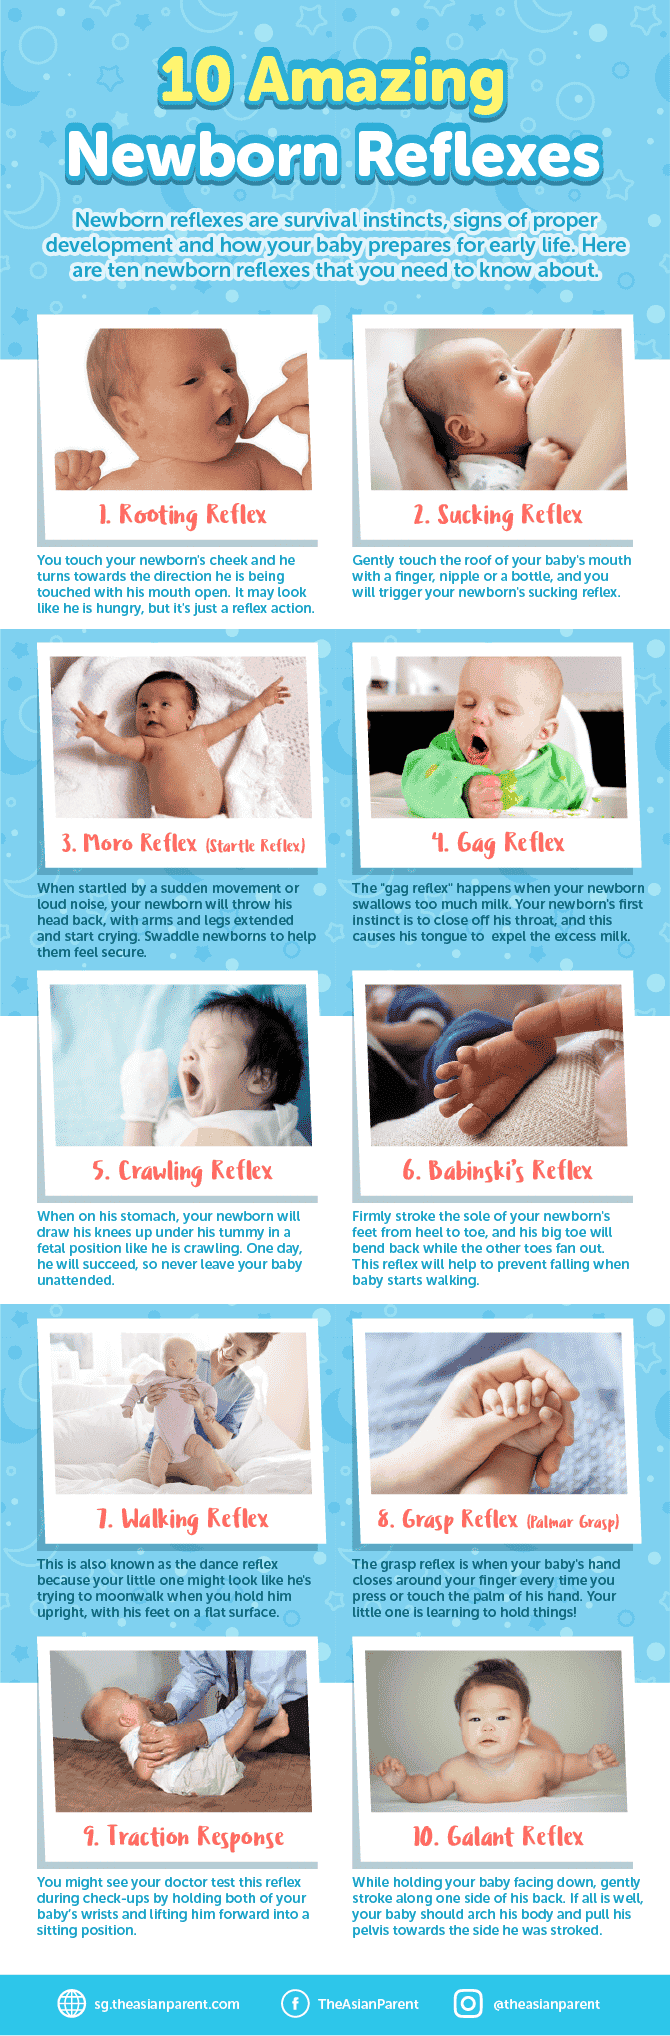 10 Newborn Reflexes Every New Mum Needs to Know About